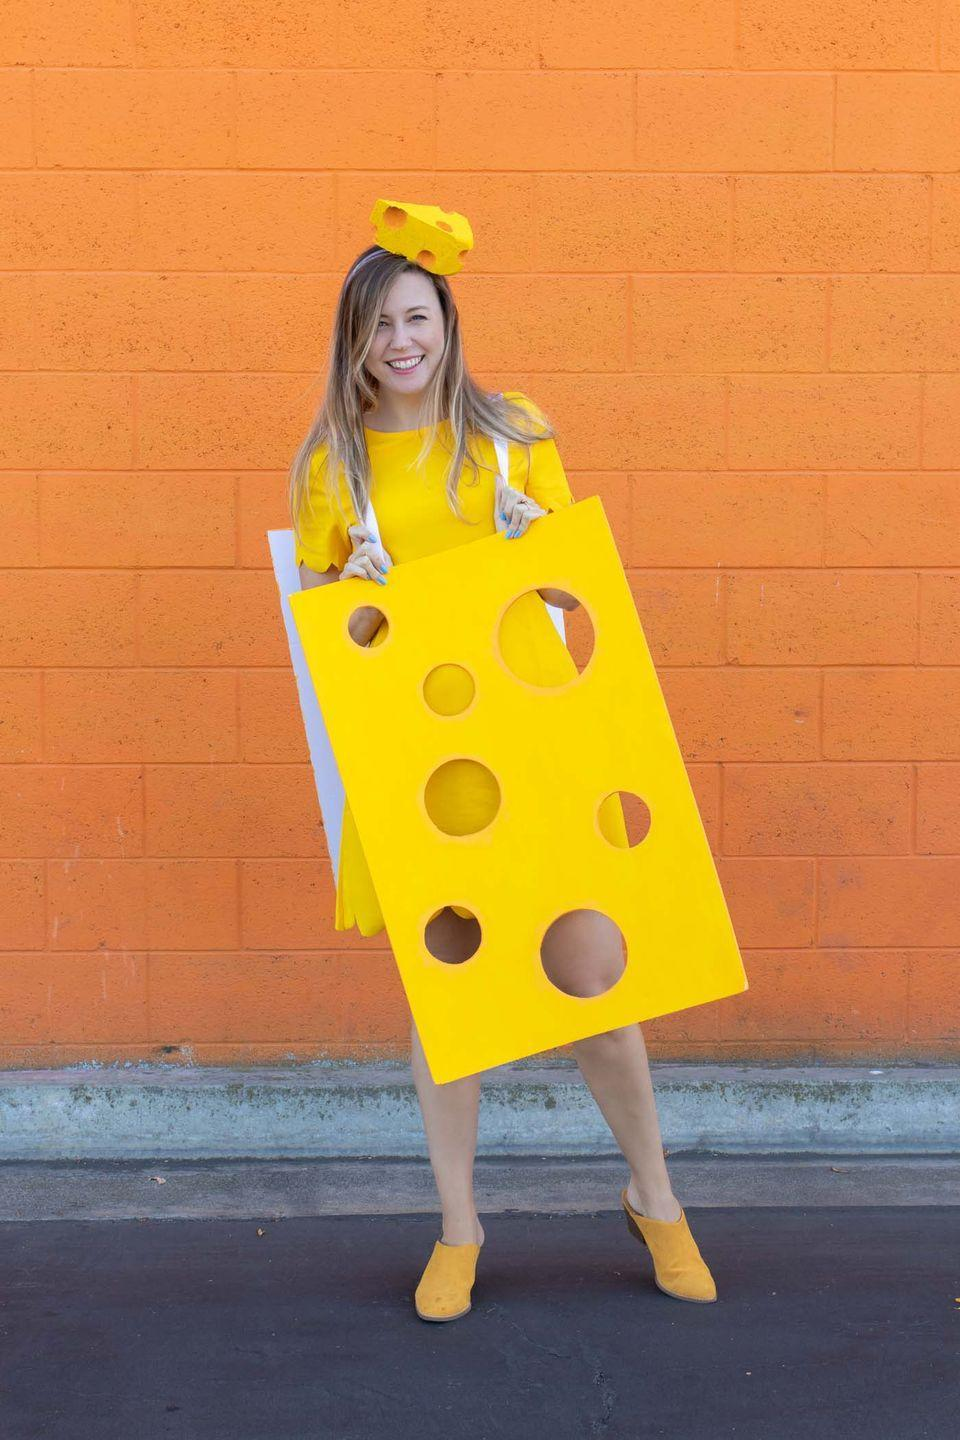 """<p>This easy, cheesy costume is hole-y fun (see what we did there?), but don't forget the yellow shoes!</p><p><strong>Get the tutorial at <a href=""""https://www.clubcrafted.com/cheese-costume-halloween/"""" rel=""""nofollow noopener"""" target=""""_blank"""" data-ylk=""""slk:Club Crafted"""" class=""""link rapid-noclick-resp"""">Club Crafted</a>.</strong></p><p><a class=""""link rapid-noclick-resp"""" href=""""https://www.amazon.com/Silverlake-Craft-Foam-Block-Arrangements/dp/B07TCR8T28/ref=asc_df_B07TCR8T28/?tag=syn-yahoo-20&ascsubtag=%5Bartid%7C10050.g.4571%5Bsrc%7Cyahoo-us"""" rel=""""nofollow noopener"""" target=""""_blank"""" data-ylk=""""slk:SHOP CRAFTING FOAM"""">SHOP CRAFTING FOAM</a><br></p>"""